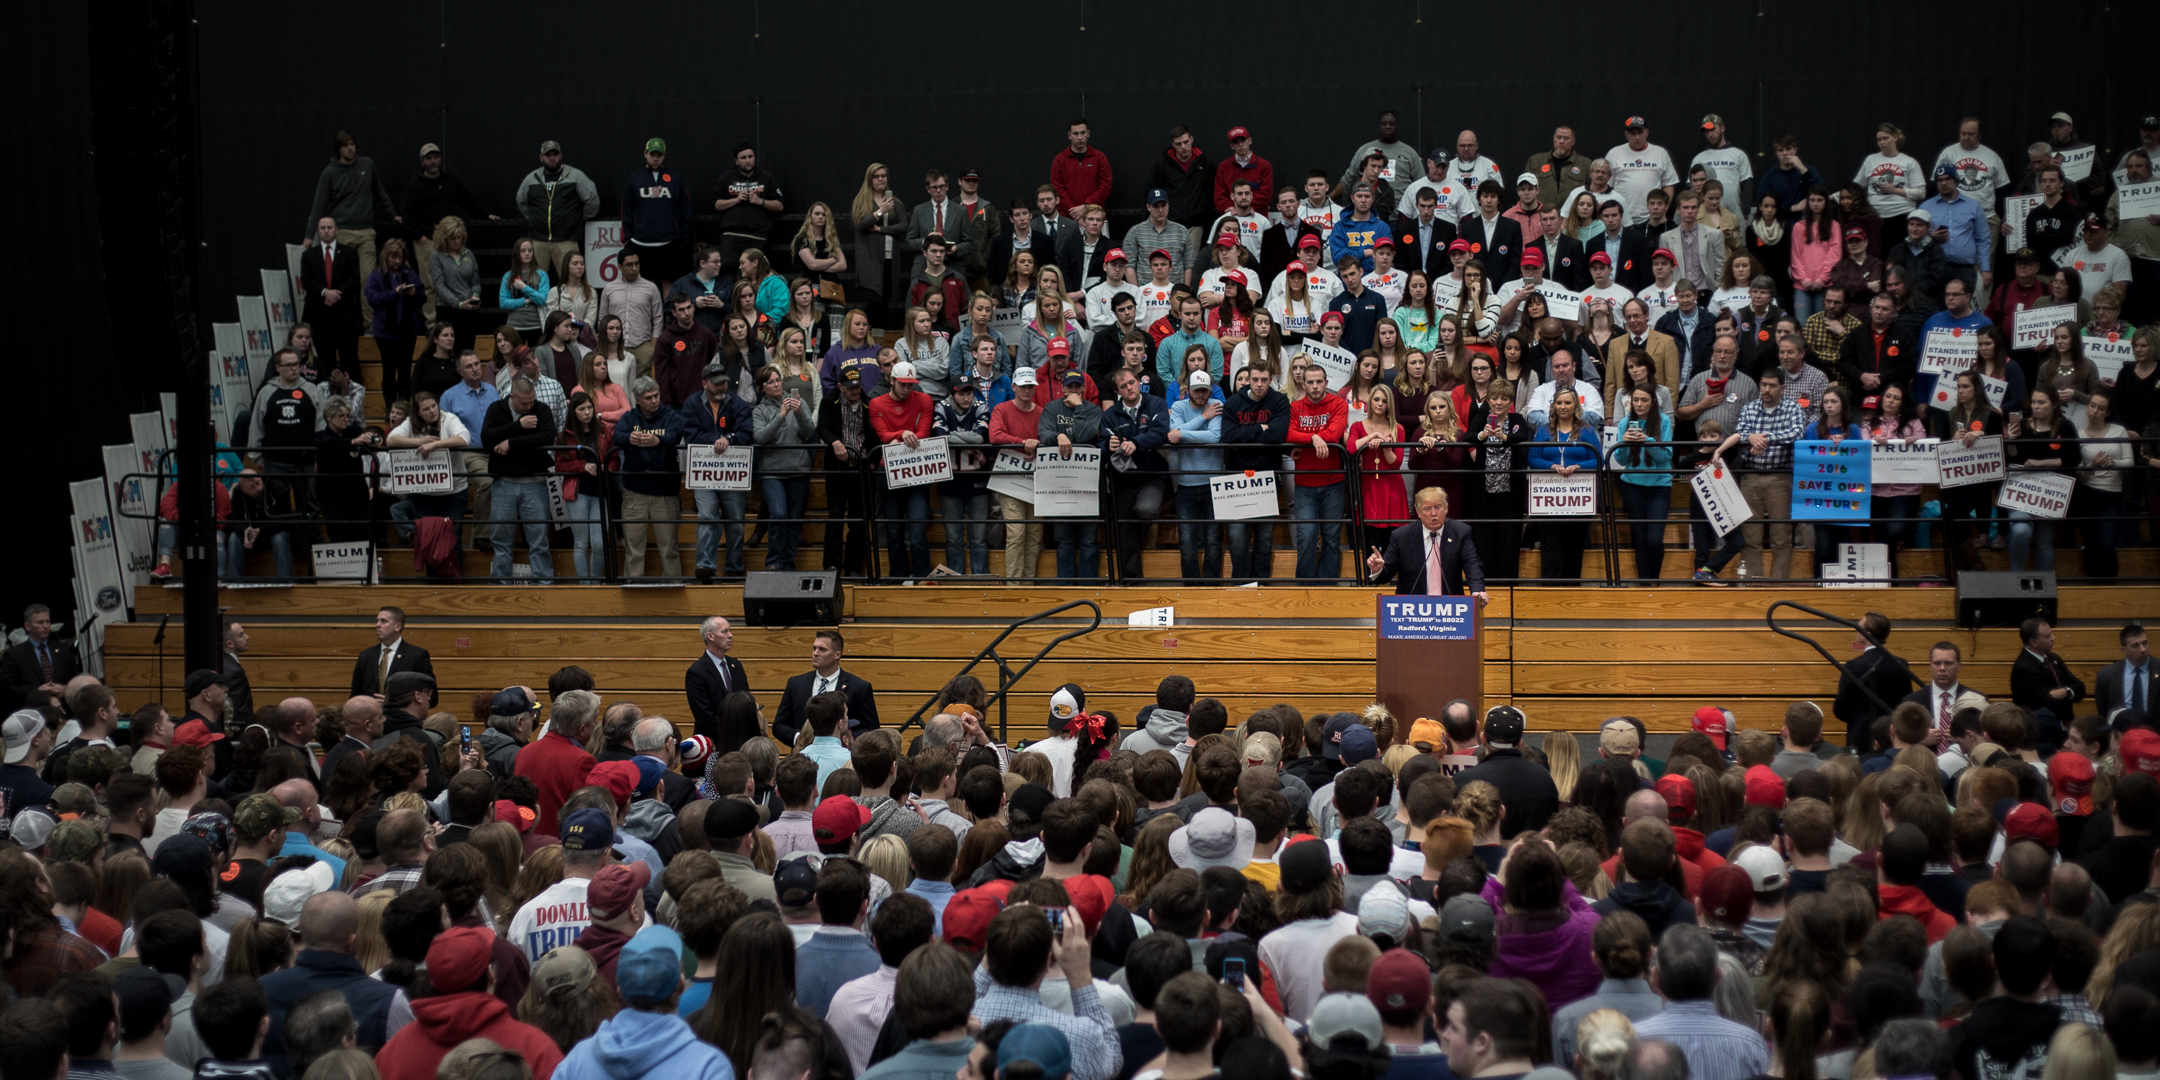 Donald Trump, surrounded by supporters at a Feb. 29 rally in Radford, Va.